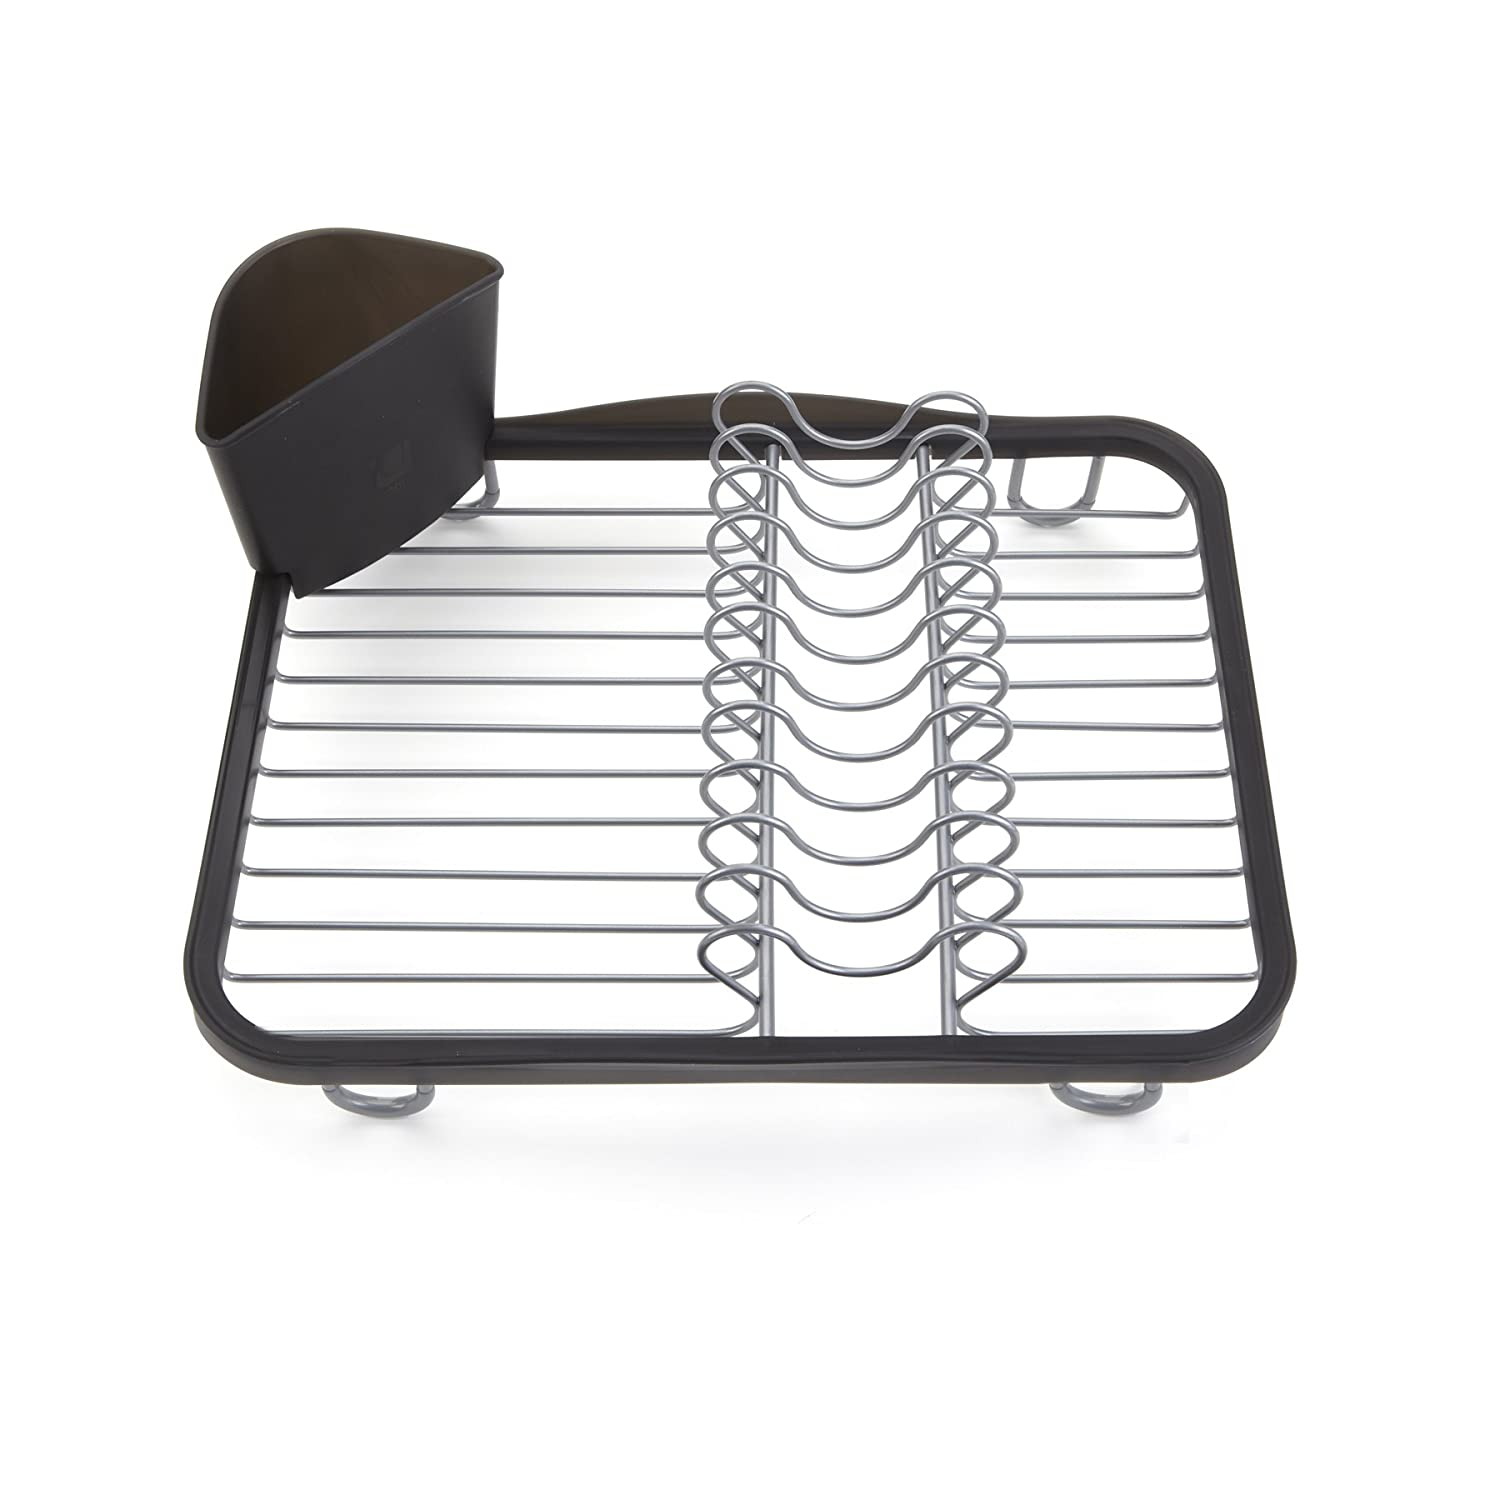 Wire dish drip dry rack sink grid utensil drainer movable utensil basket kitchen - Kitchen sink drying rack ...